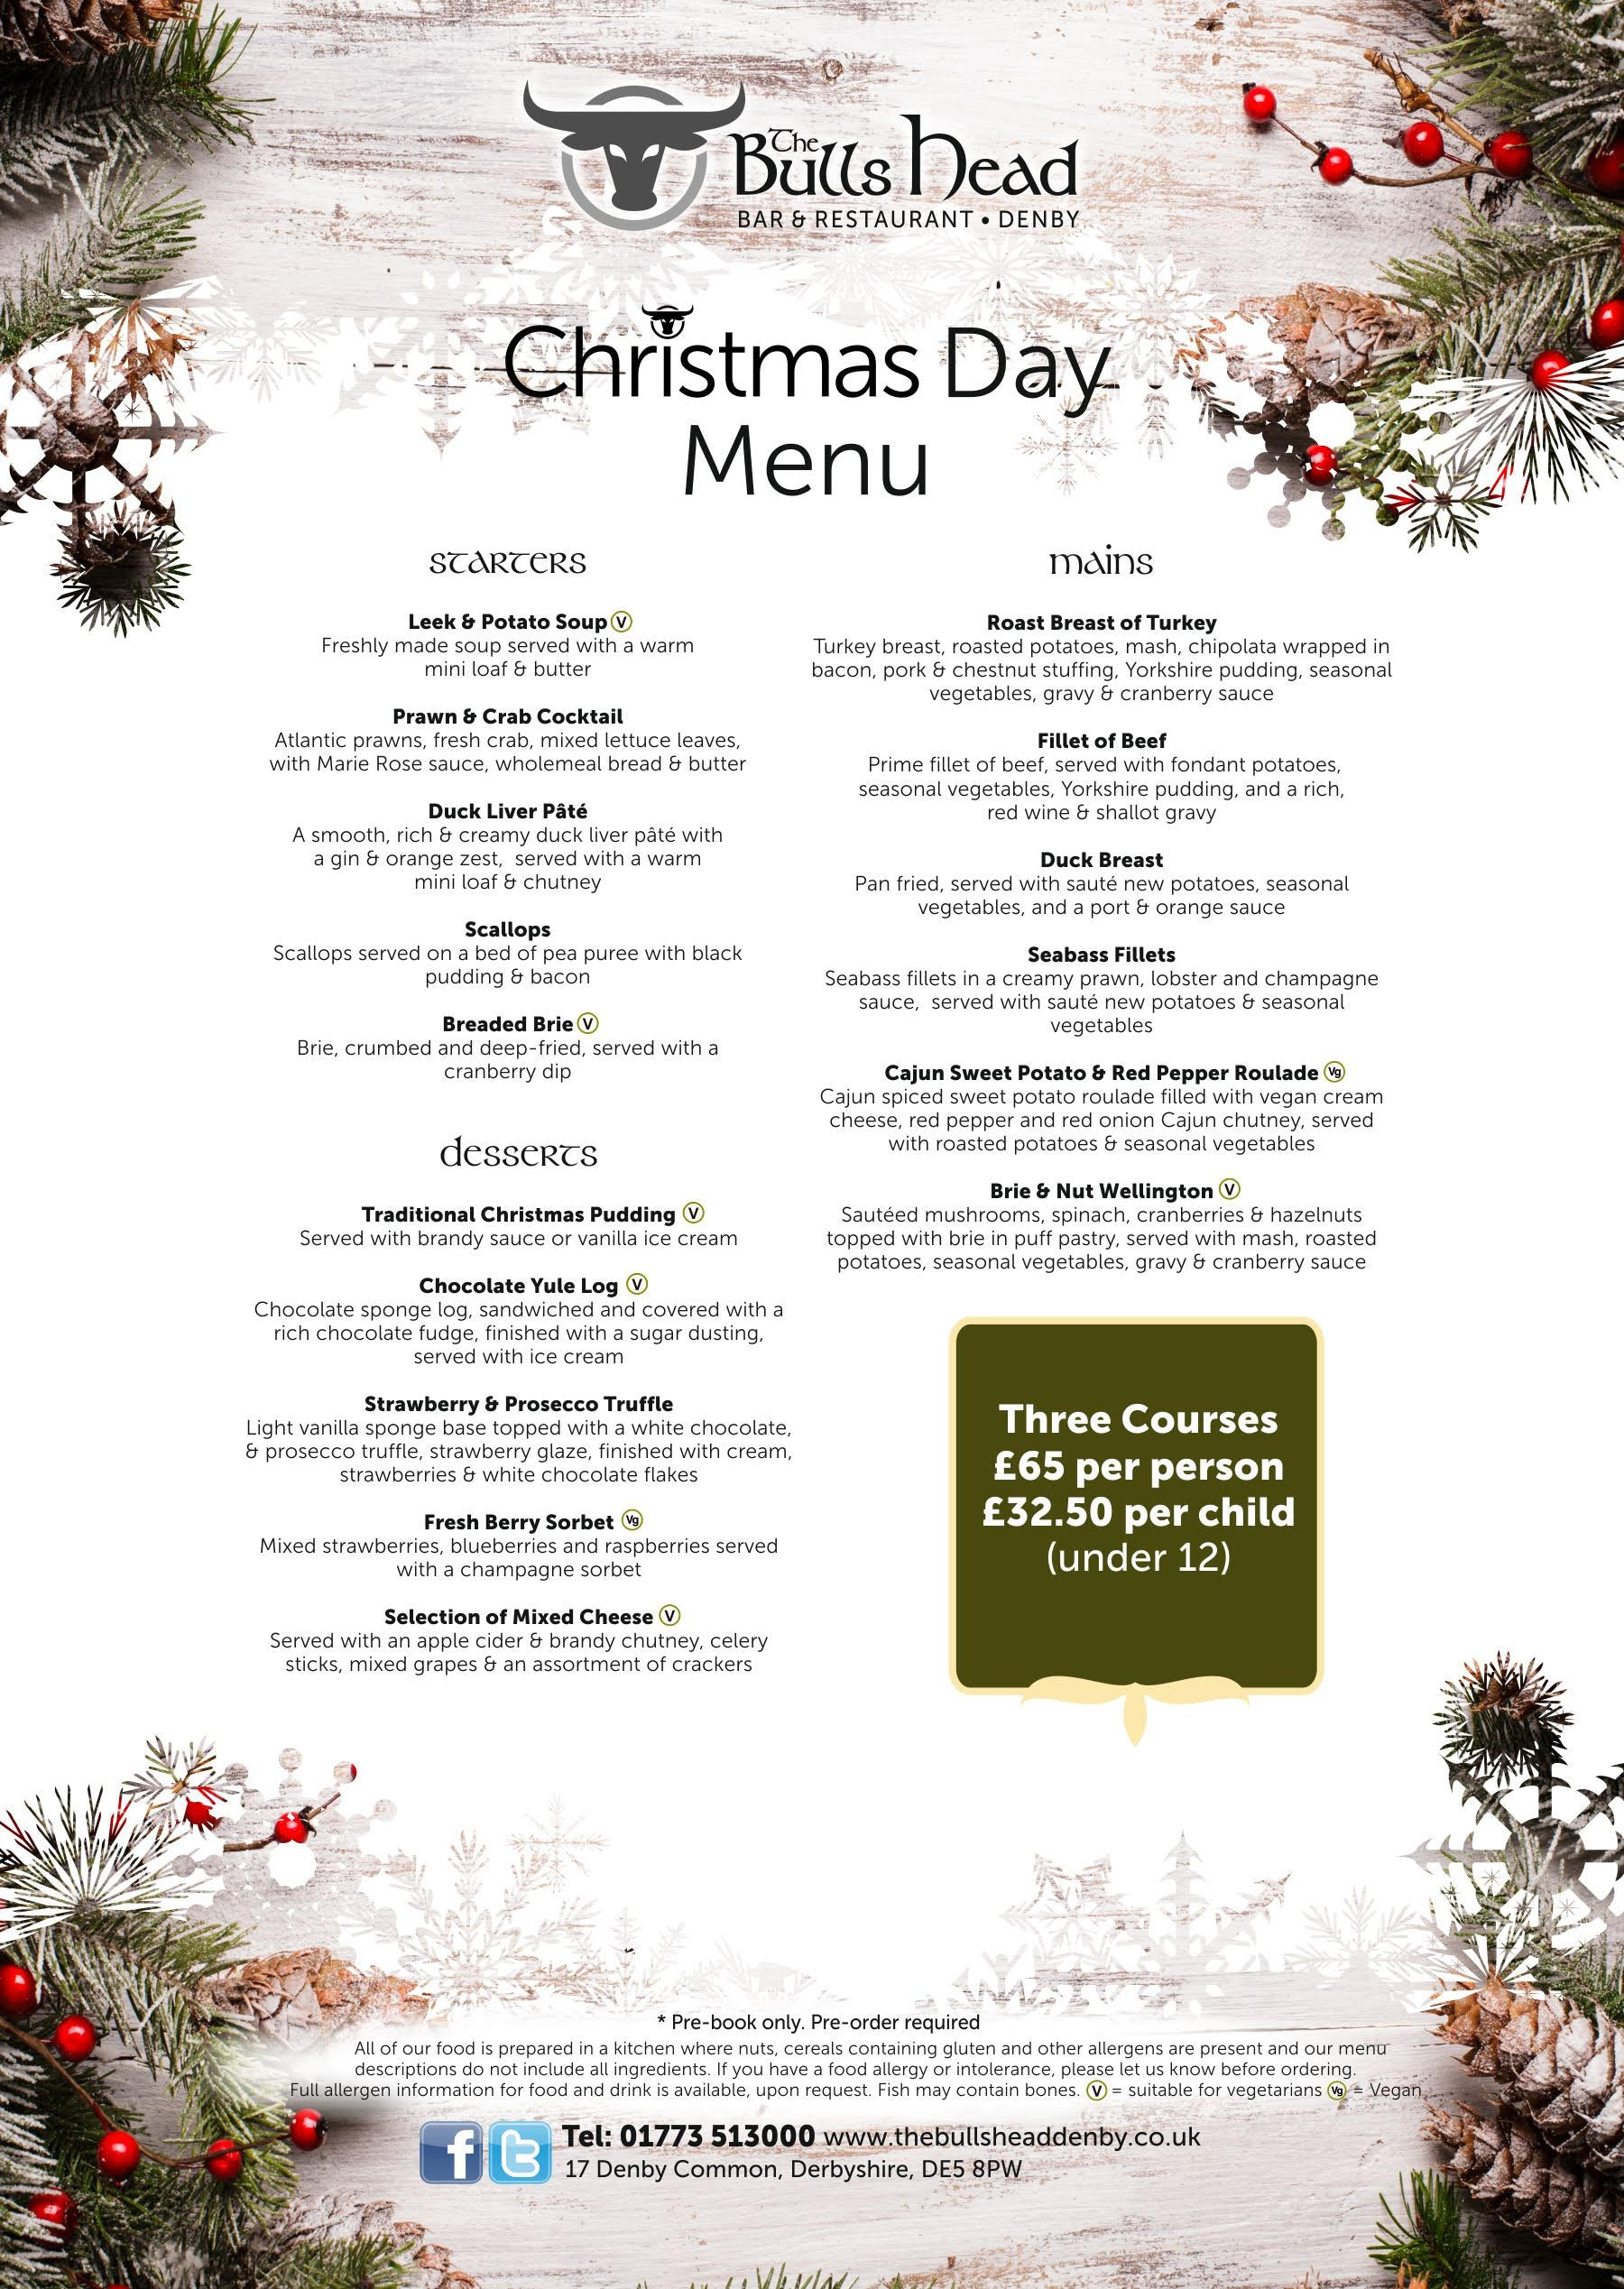 Christmas Day Menu 2019 | Bulls Head Denby